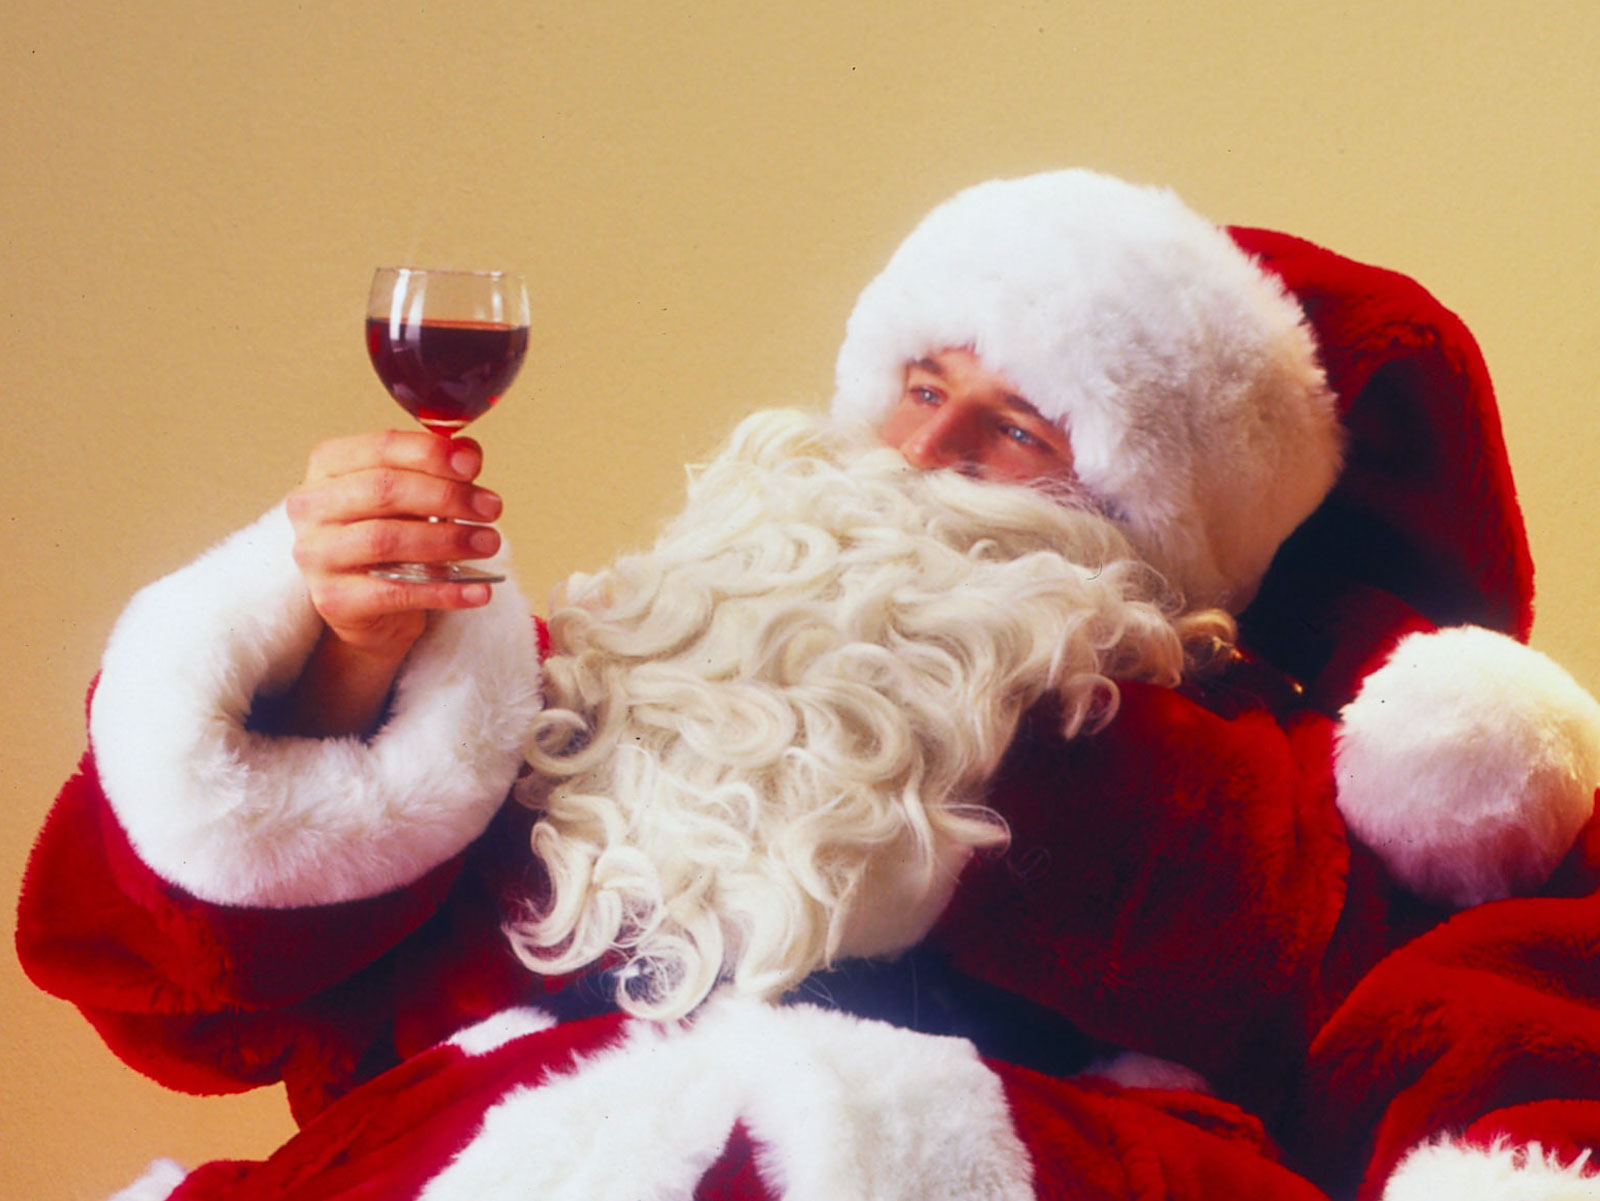 Professional Santas Get a Free Glass of Port at This Members Only Club